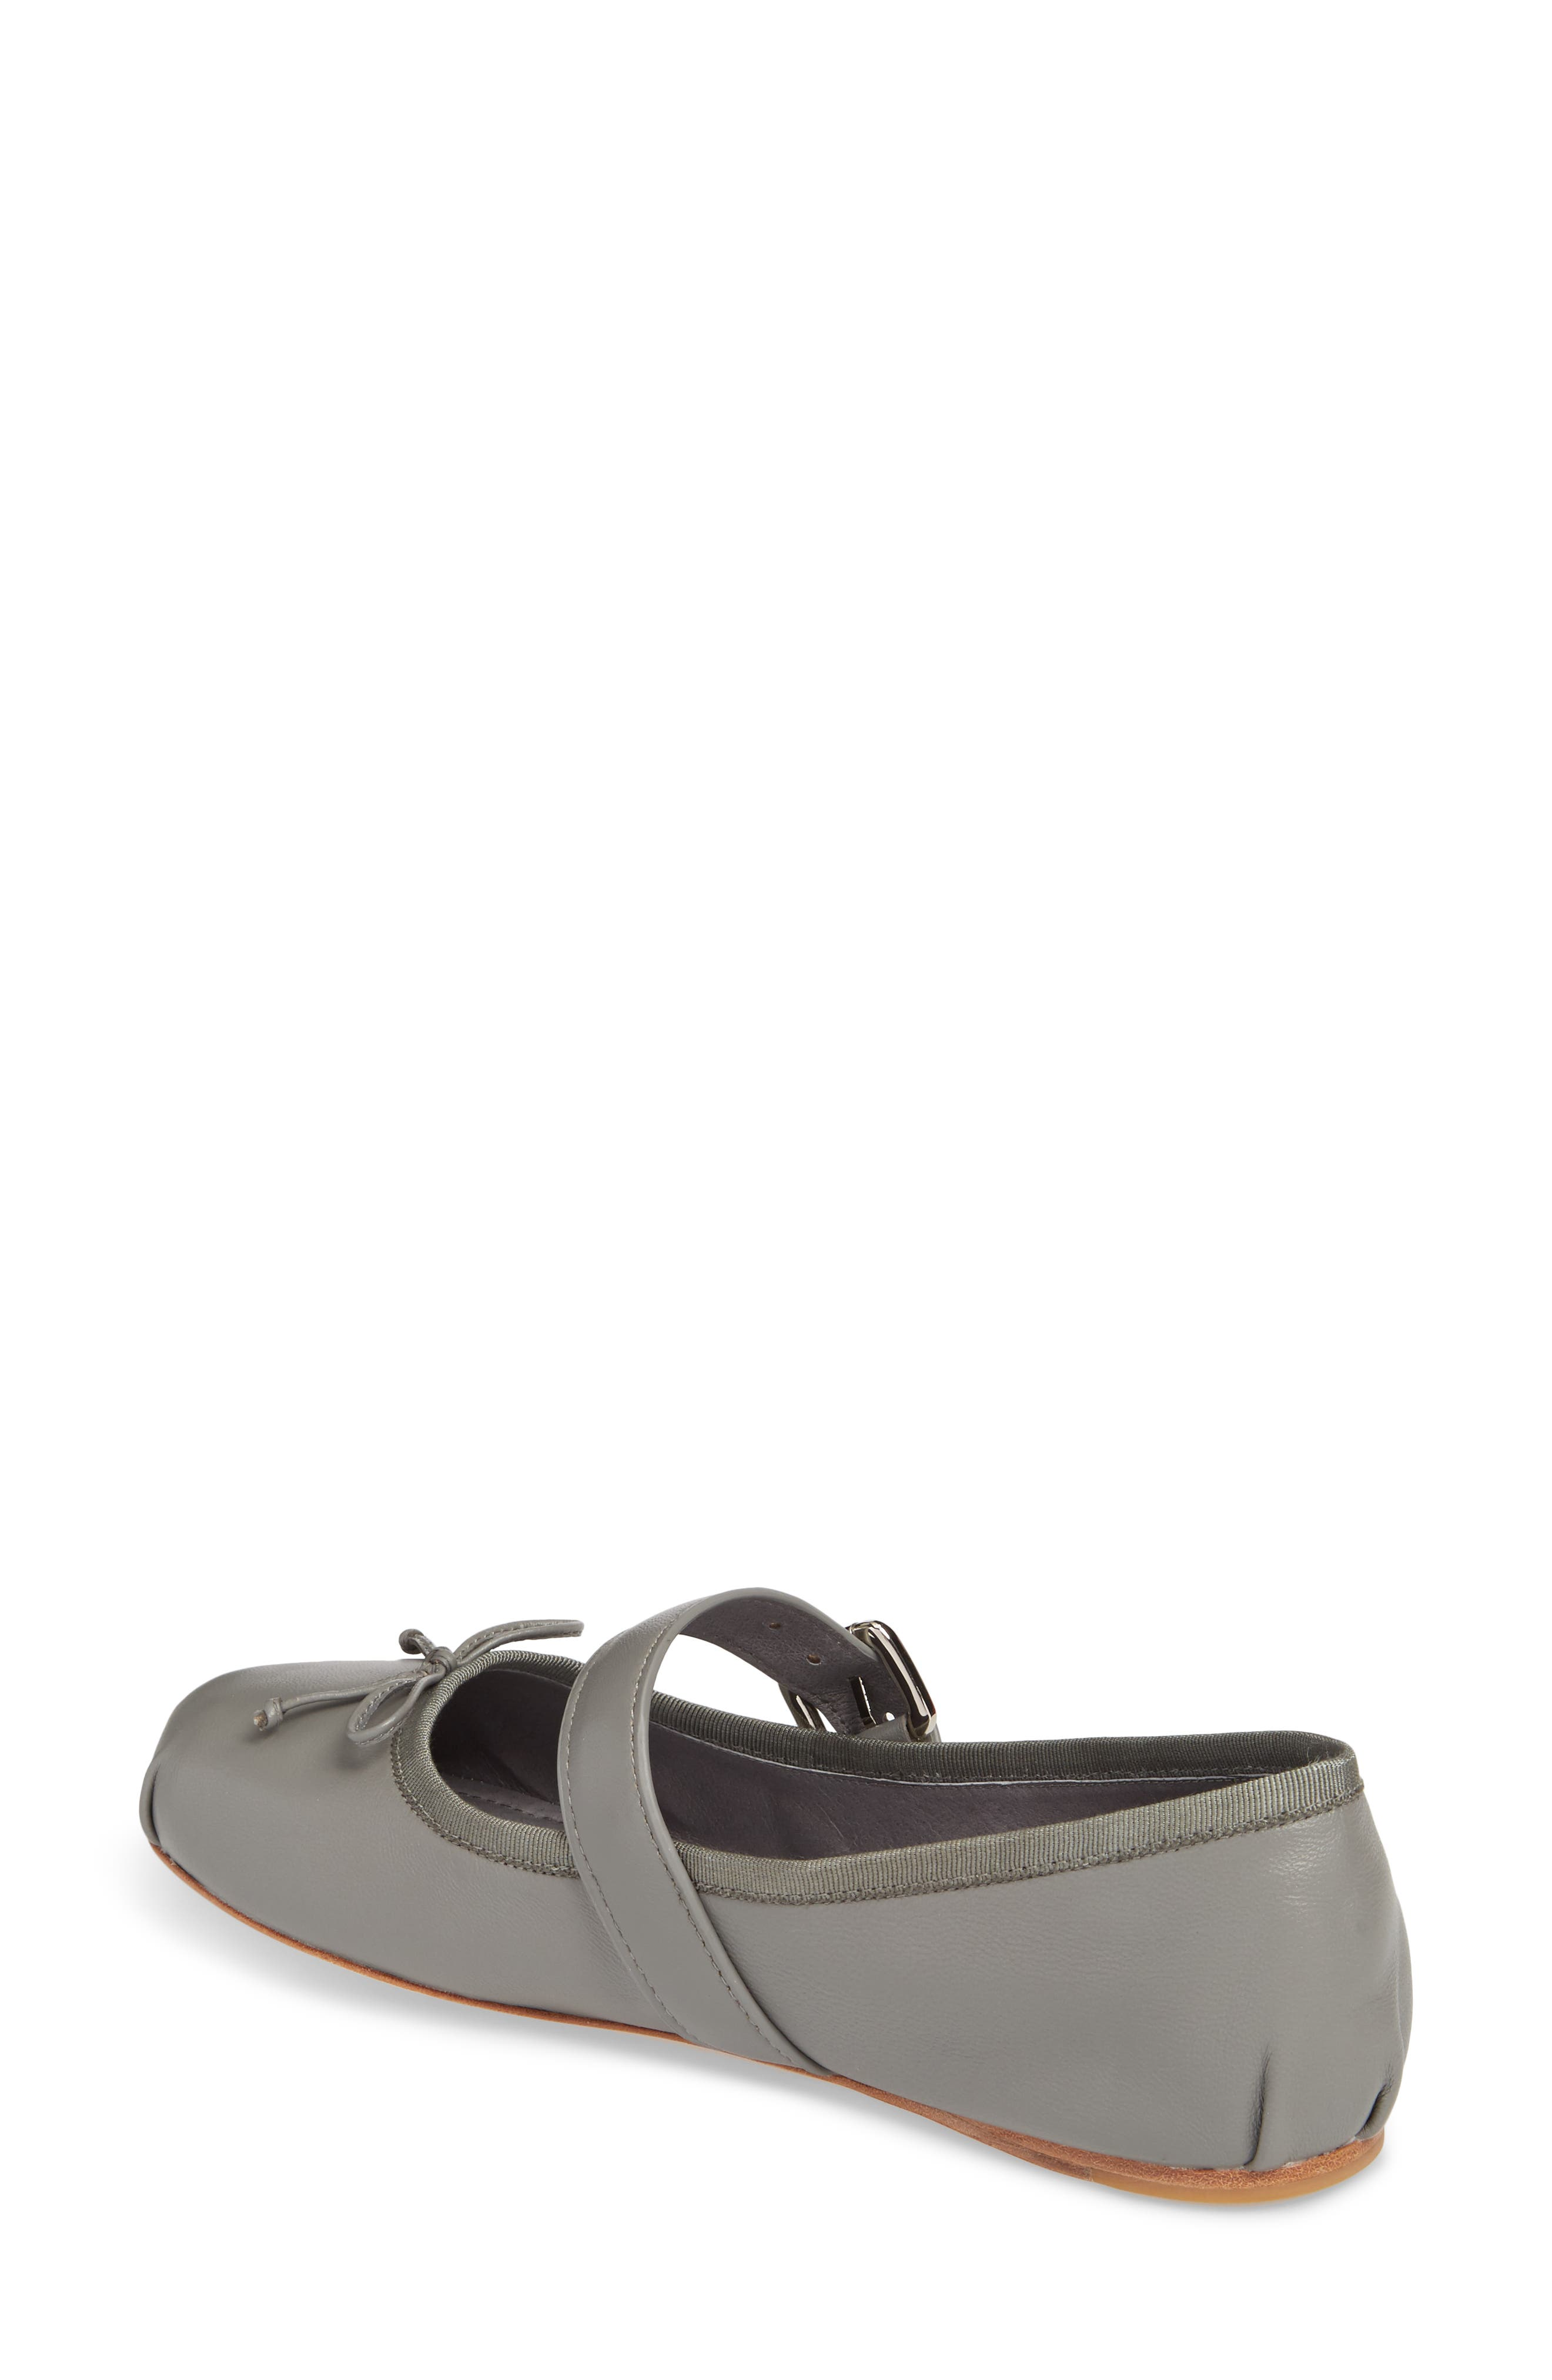 Molly Mary Jane Flat,                             Alternate thumbnail 2, color,                             Grey Leather